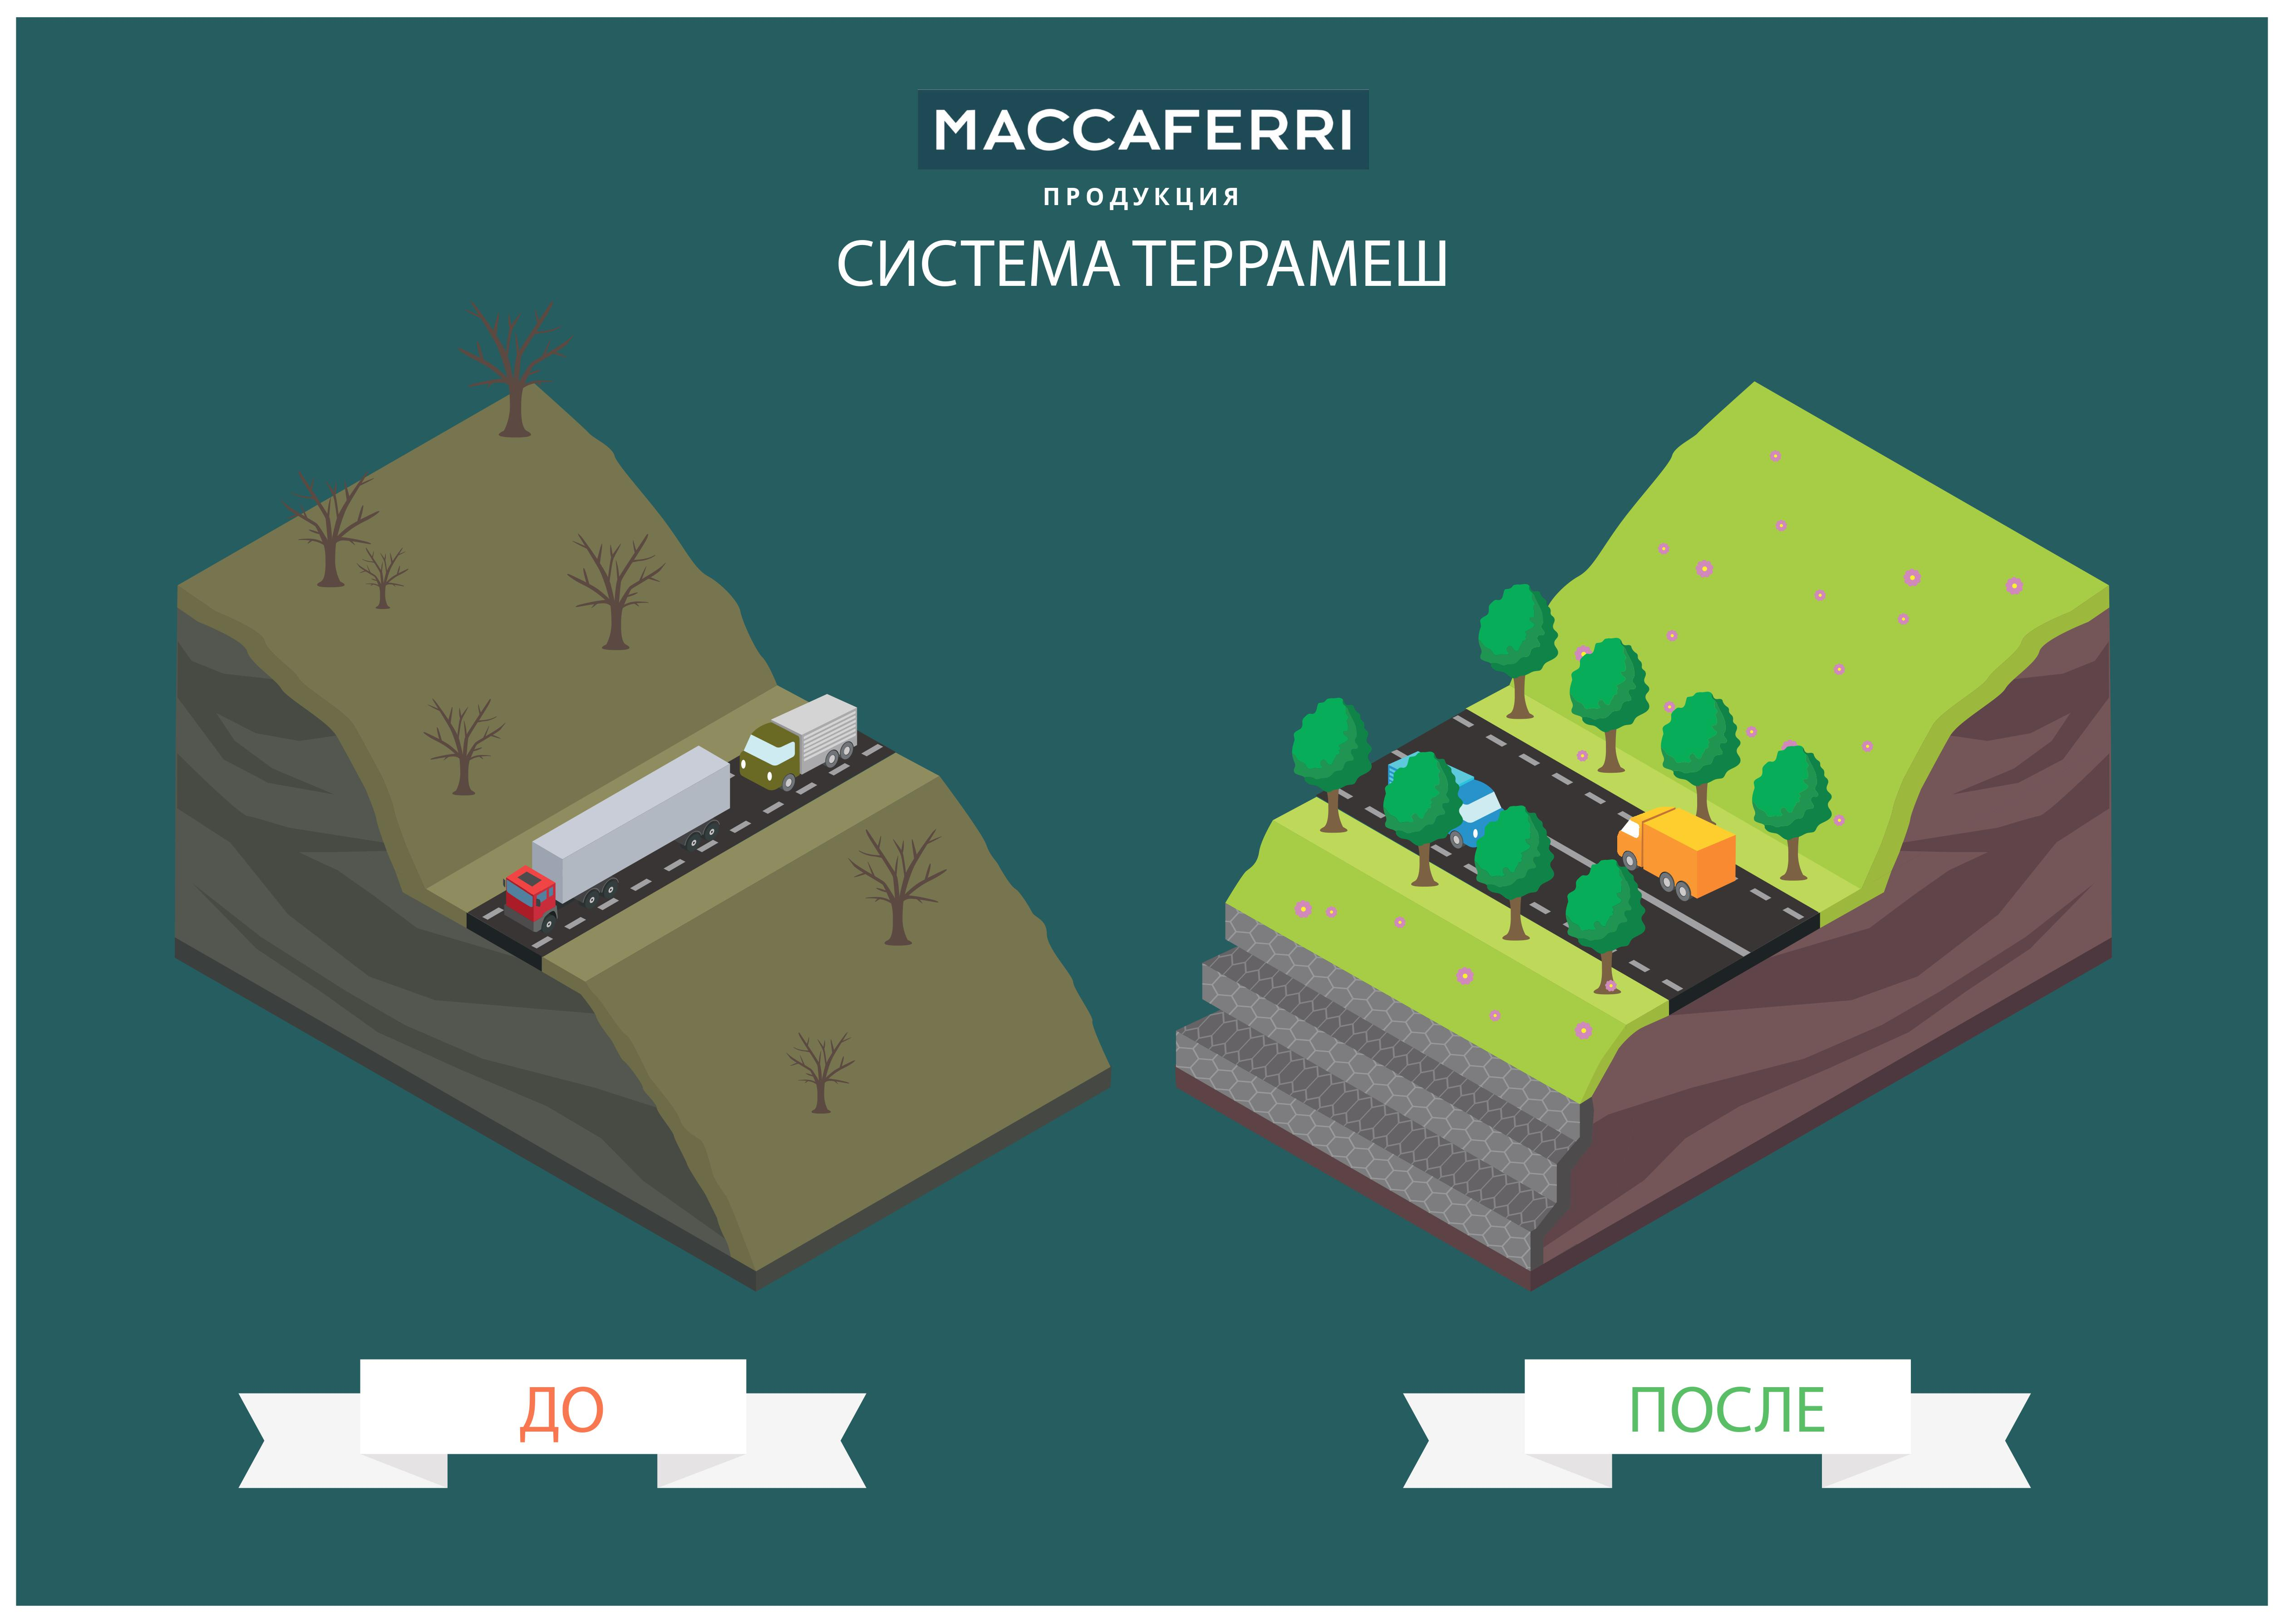 Terramesh product respects the environment maccaferri russia maccaferris reinforced soil systems are at the forefront in stabilizing steep slopes with competitive costs long life and high degree of adaptability to publicscrutiny Gallery